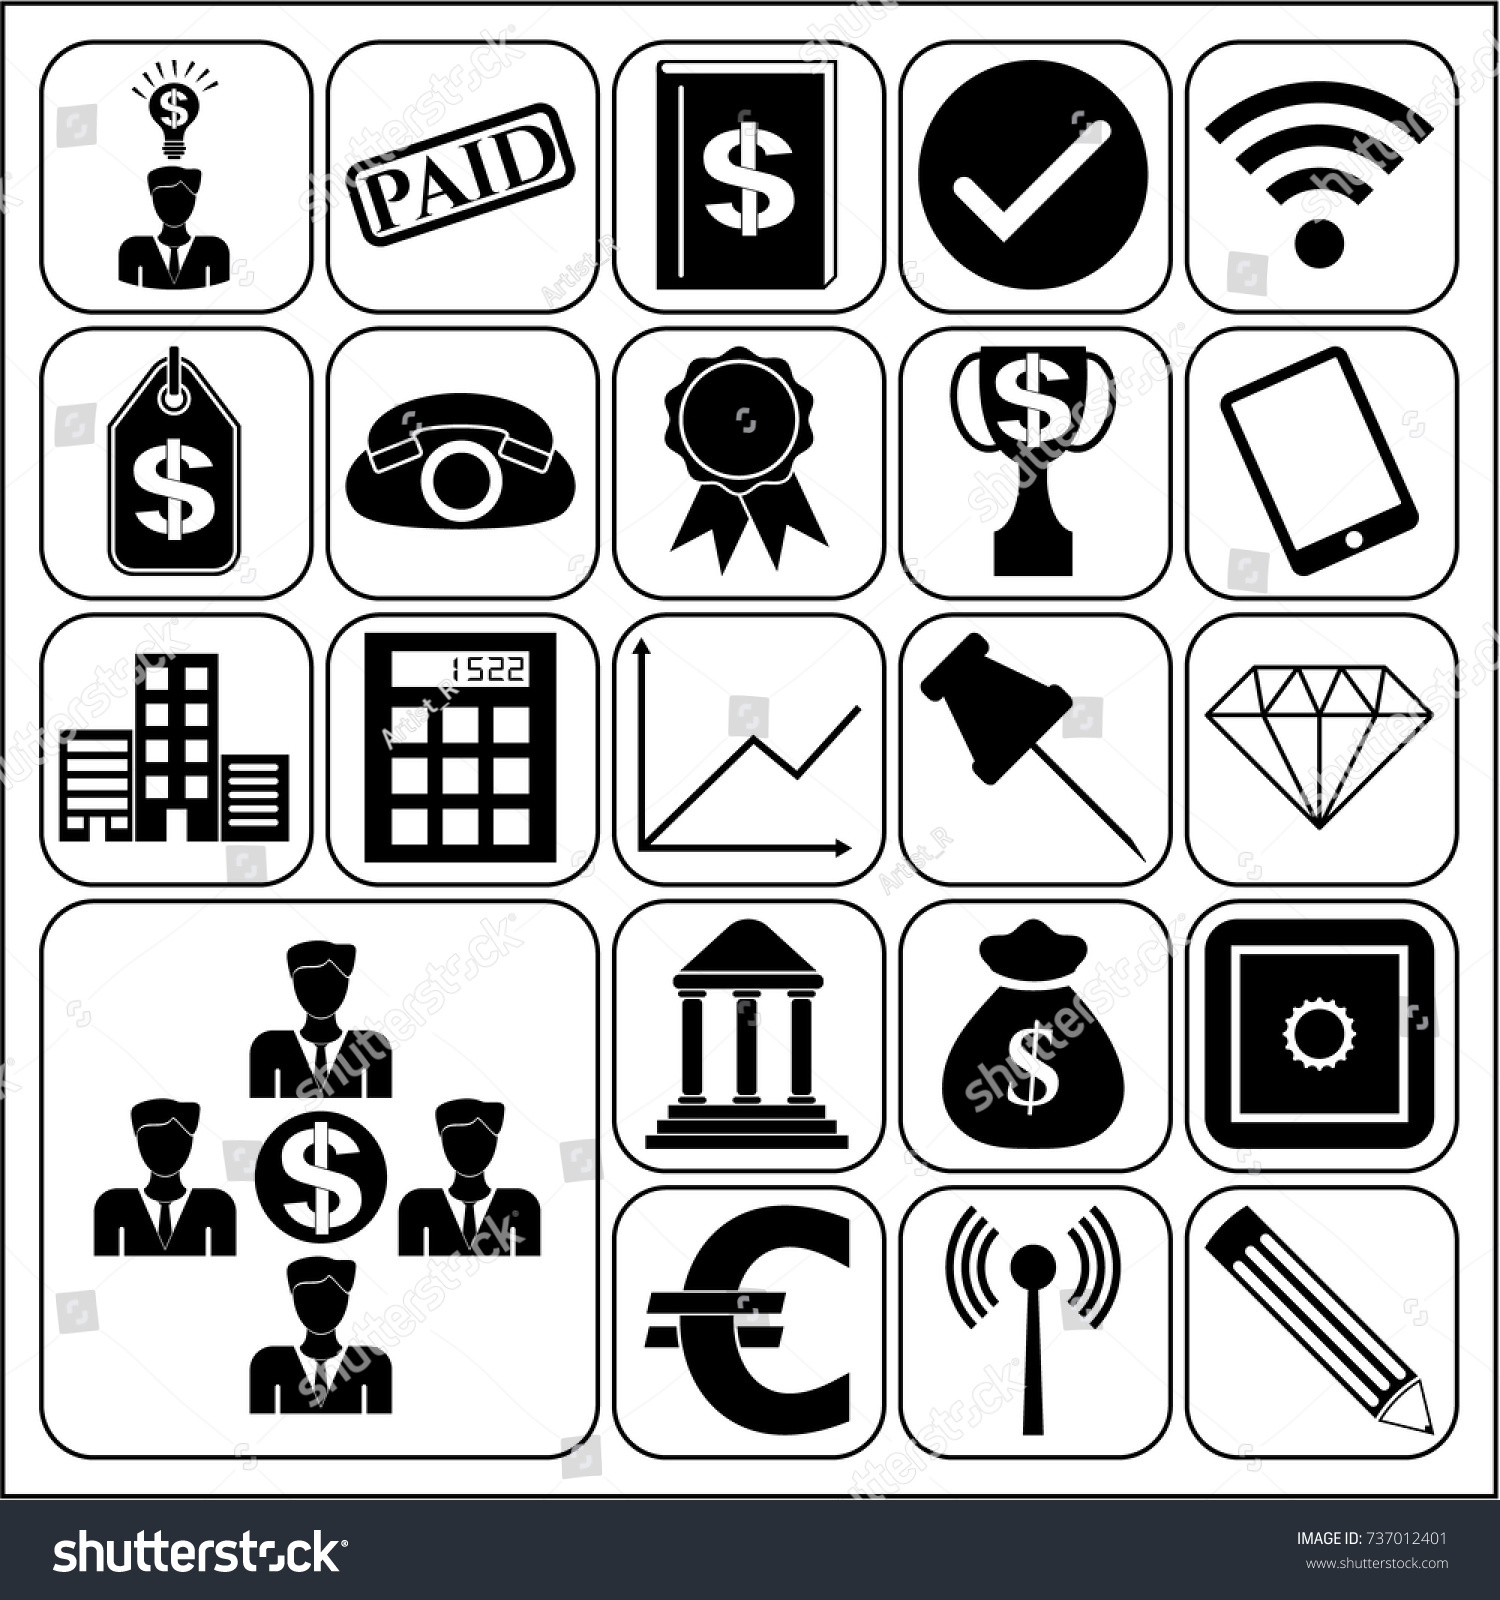 Set 22 Business Icons Symbols Pictograms Stock Vector Hd Royalty